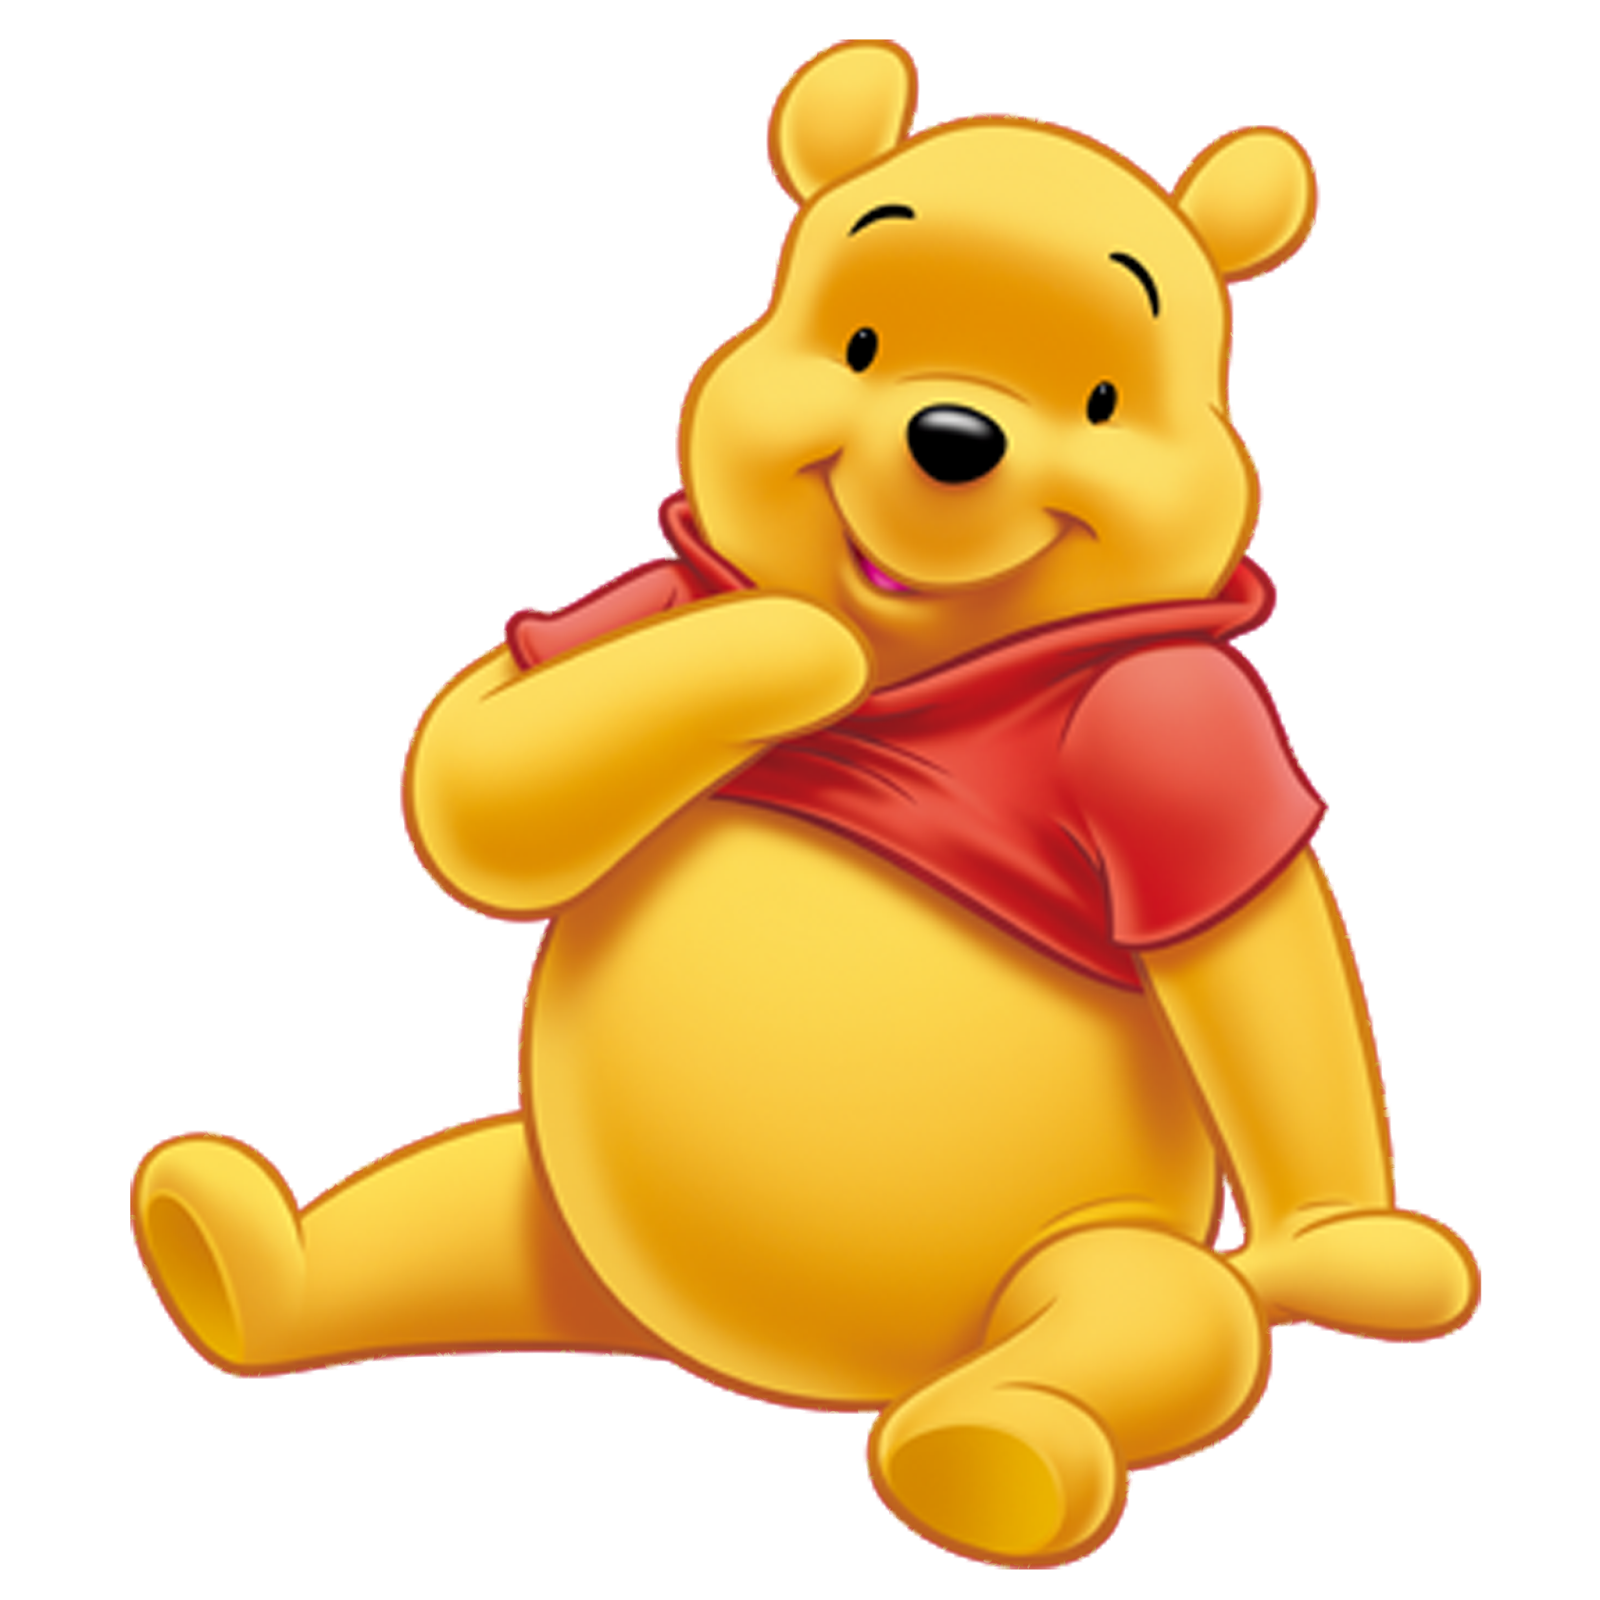 Download Wallpaper Of Winnie The Pooh Hd Backgrounds